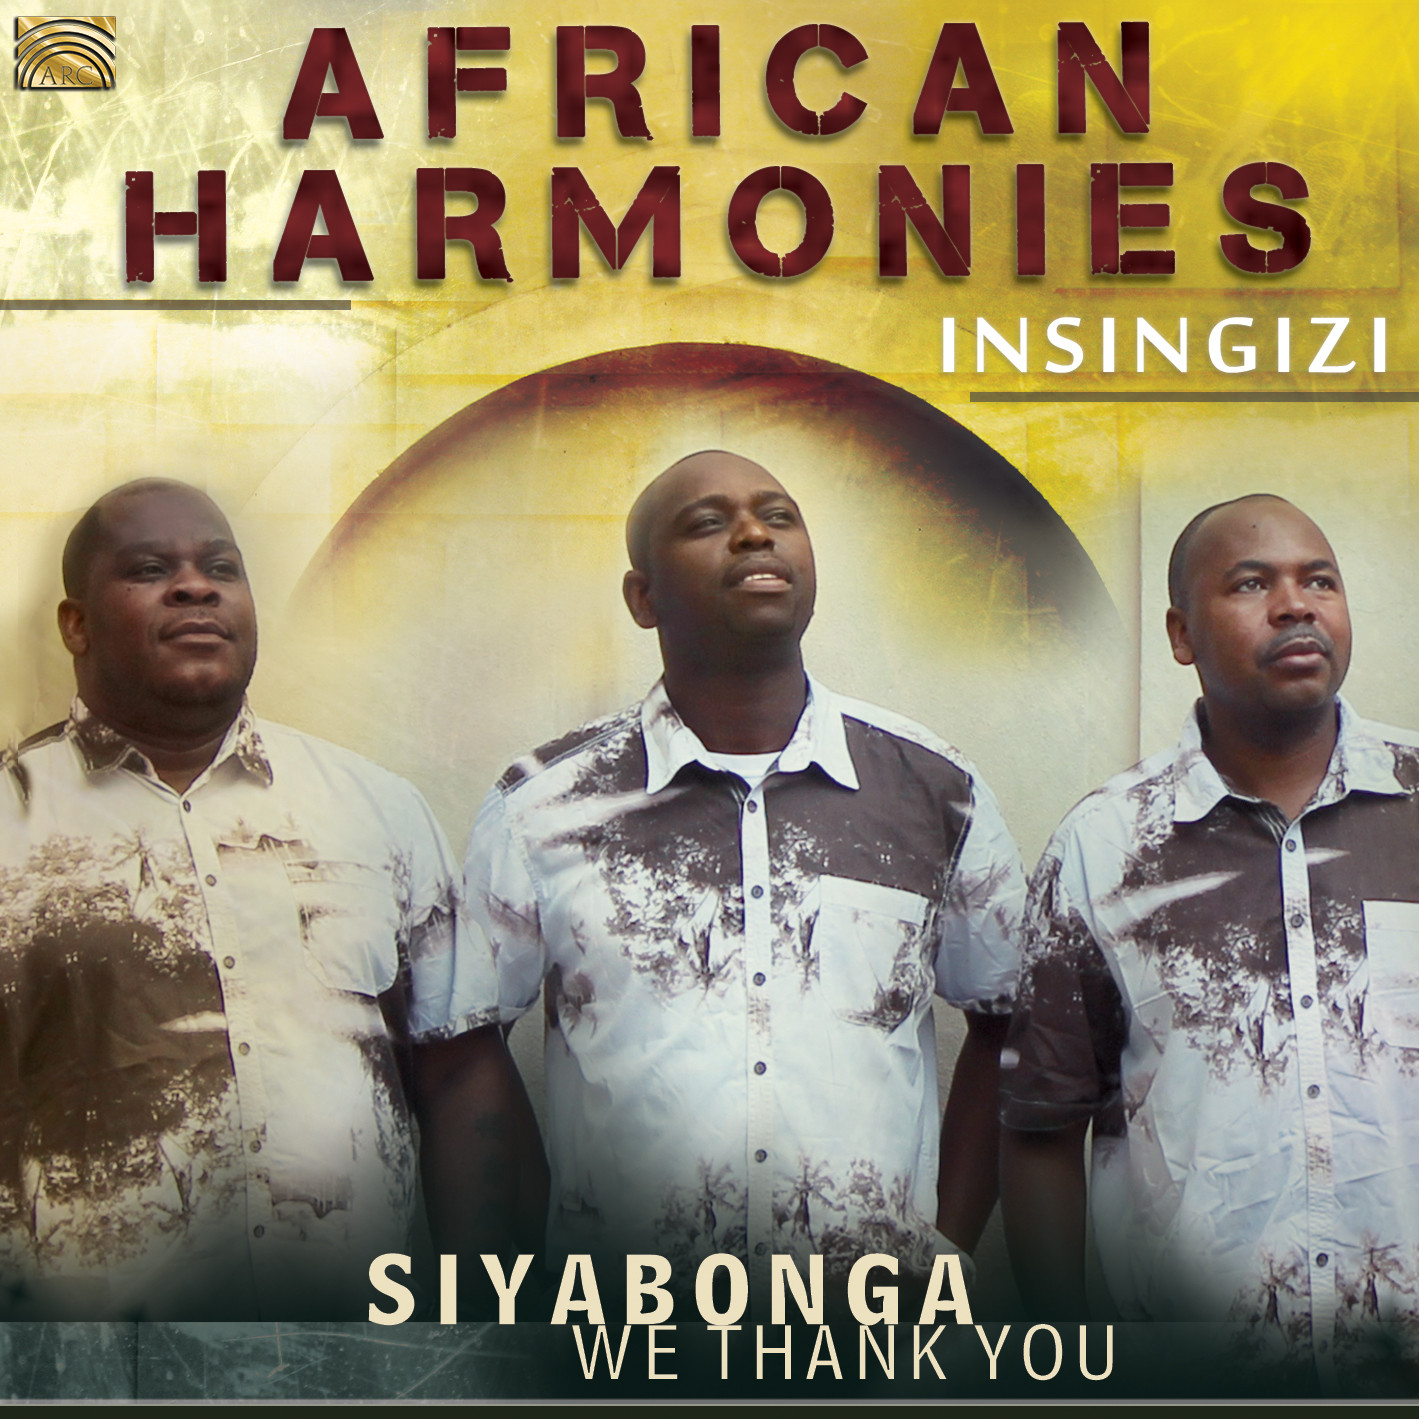 EUCD2607 African Harmonies - Siyabonga - We Thank You